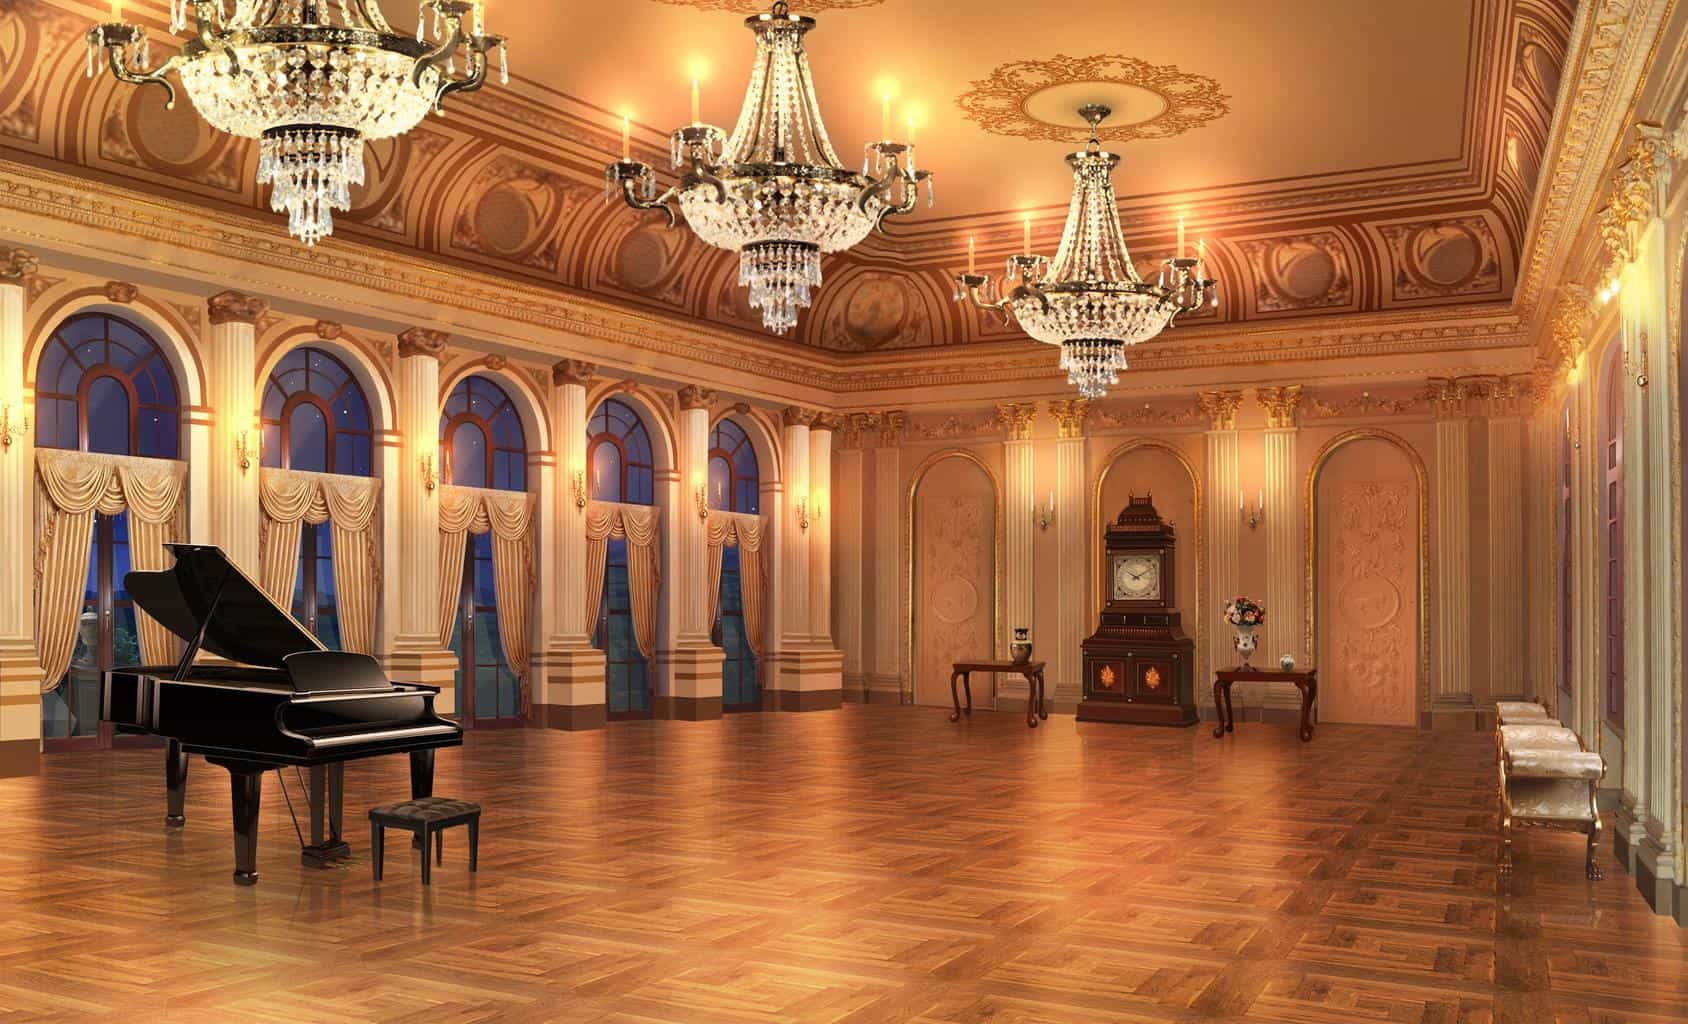 Anime Ballroom Background Posted By Michelle Thompson